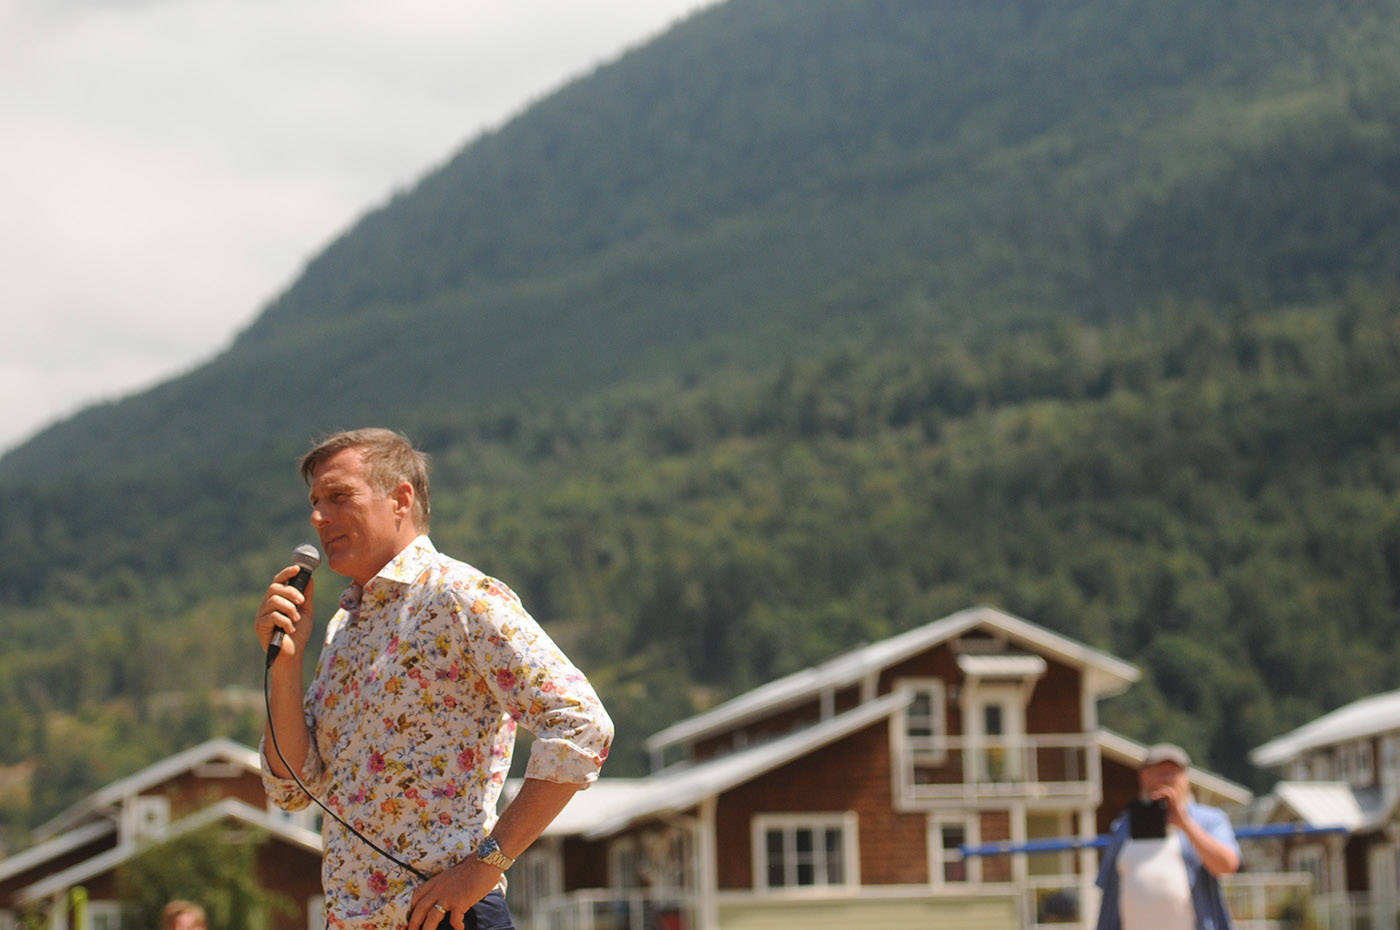 Maxime Bernier, leader of the People's Party of Canada, speaks during a stop on his Mad Max Summer 2021 Pre-Election Tour at Yarrow Pioneer Park on Saturday, July 17, 2021. (Jenna Hauck/ Chilliwack Progress file)